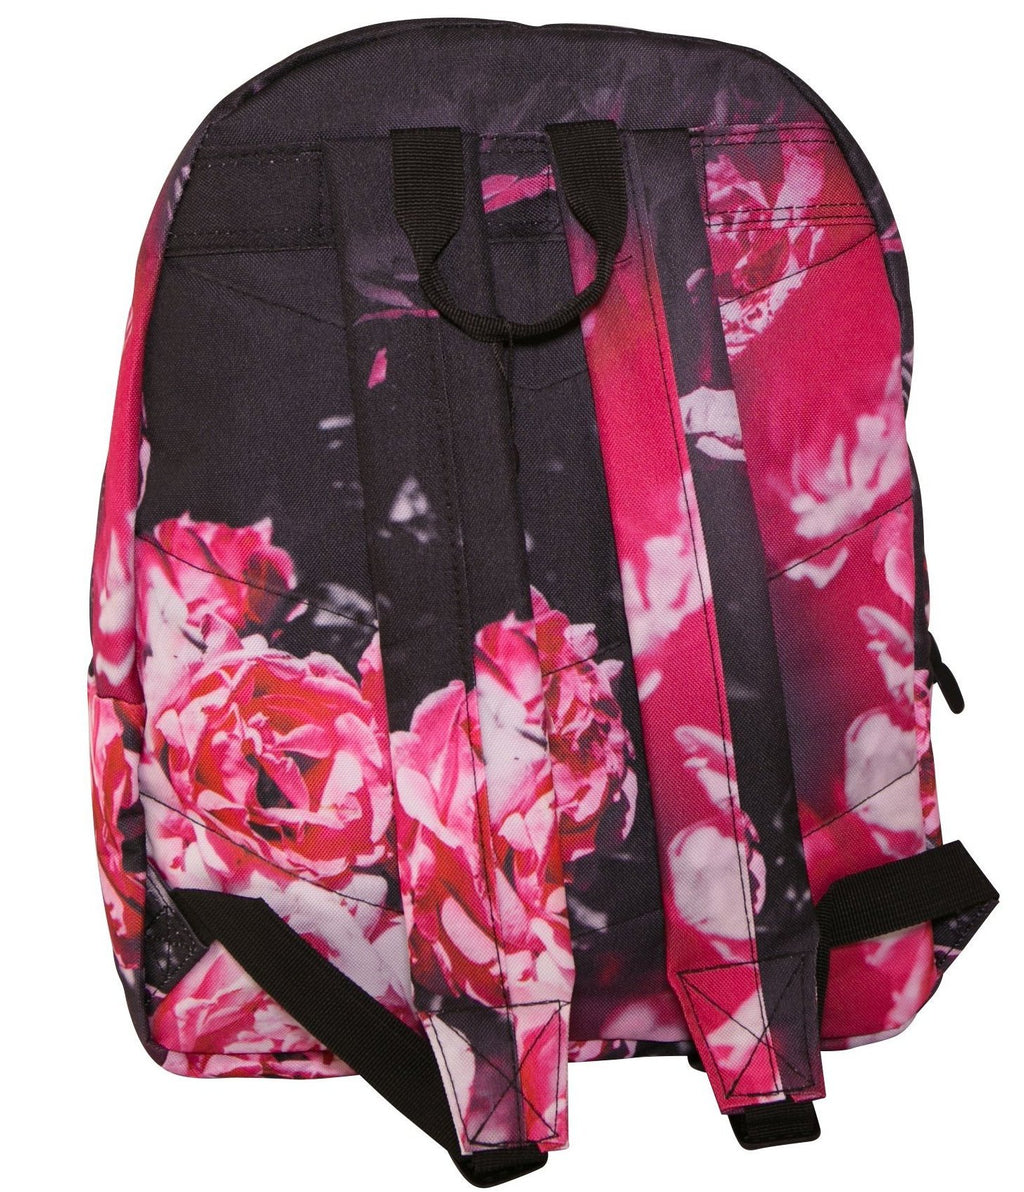 HYPE RED FLORAL BACKPACK RUCKSACK BAG - MULTI